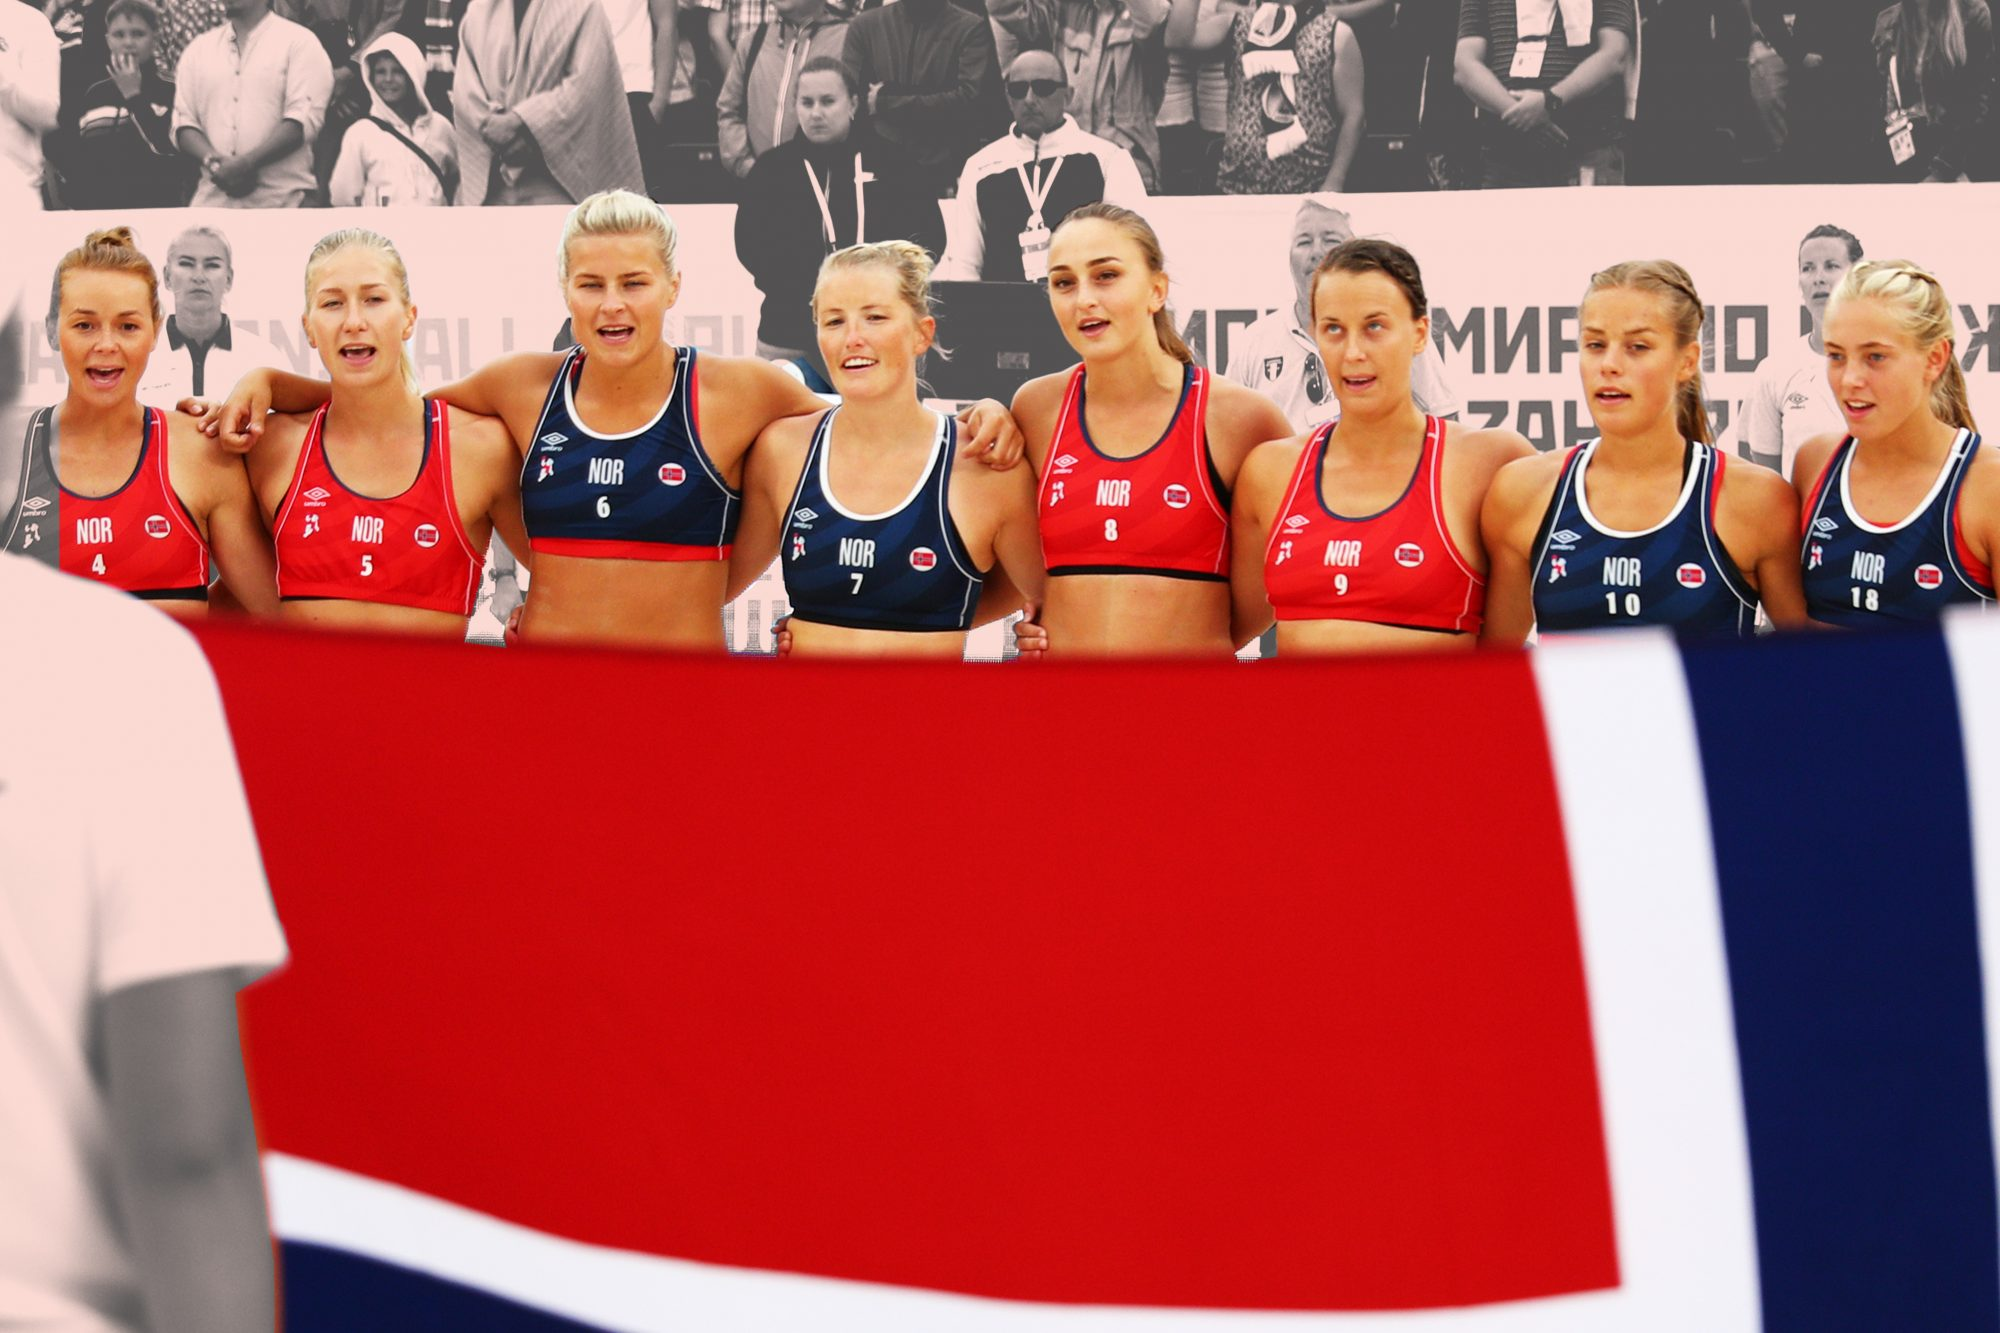 Norwegian-Women's-Handball-Team-Fined-$1700-For-Playing-In-Shorts-and-Not-Bikini-Bottoms-GettyImages-1007391194